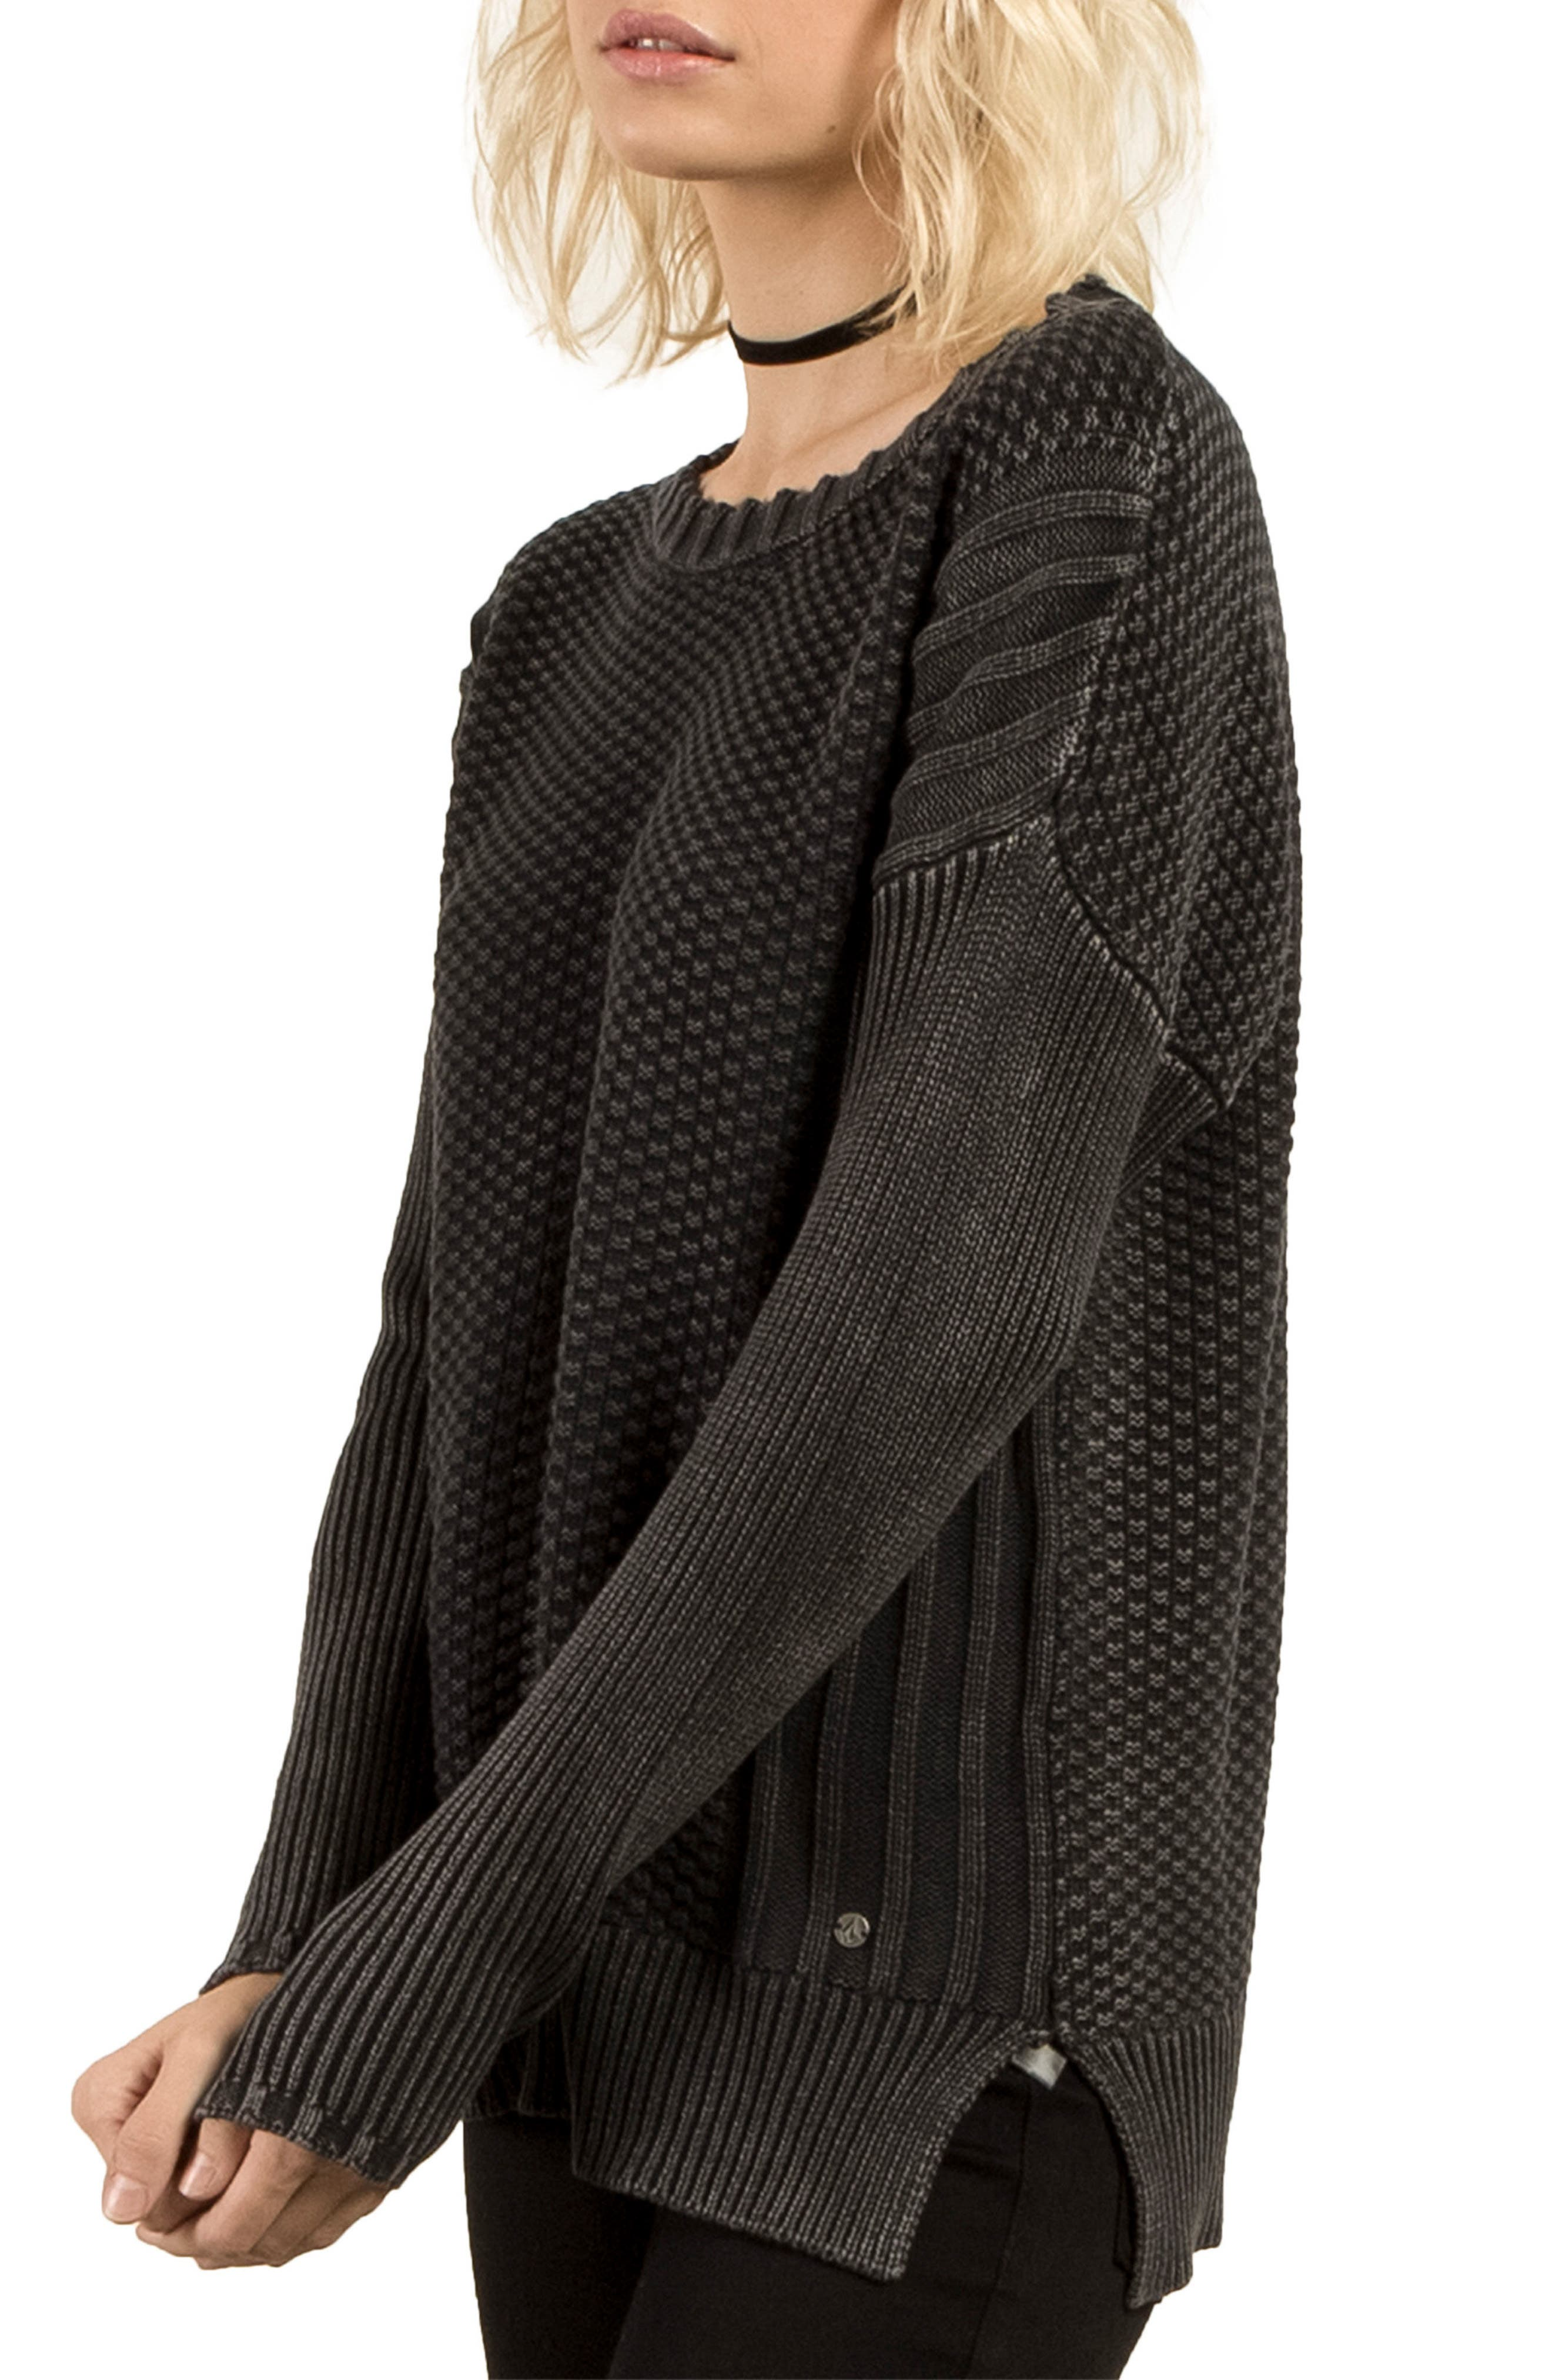 Twisted Mr Cotton Sweater,                             Alternate thumbnail 3, color,                             001